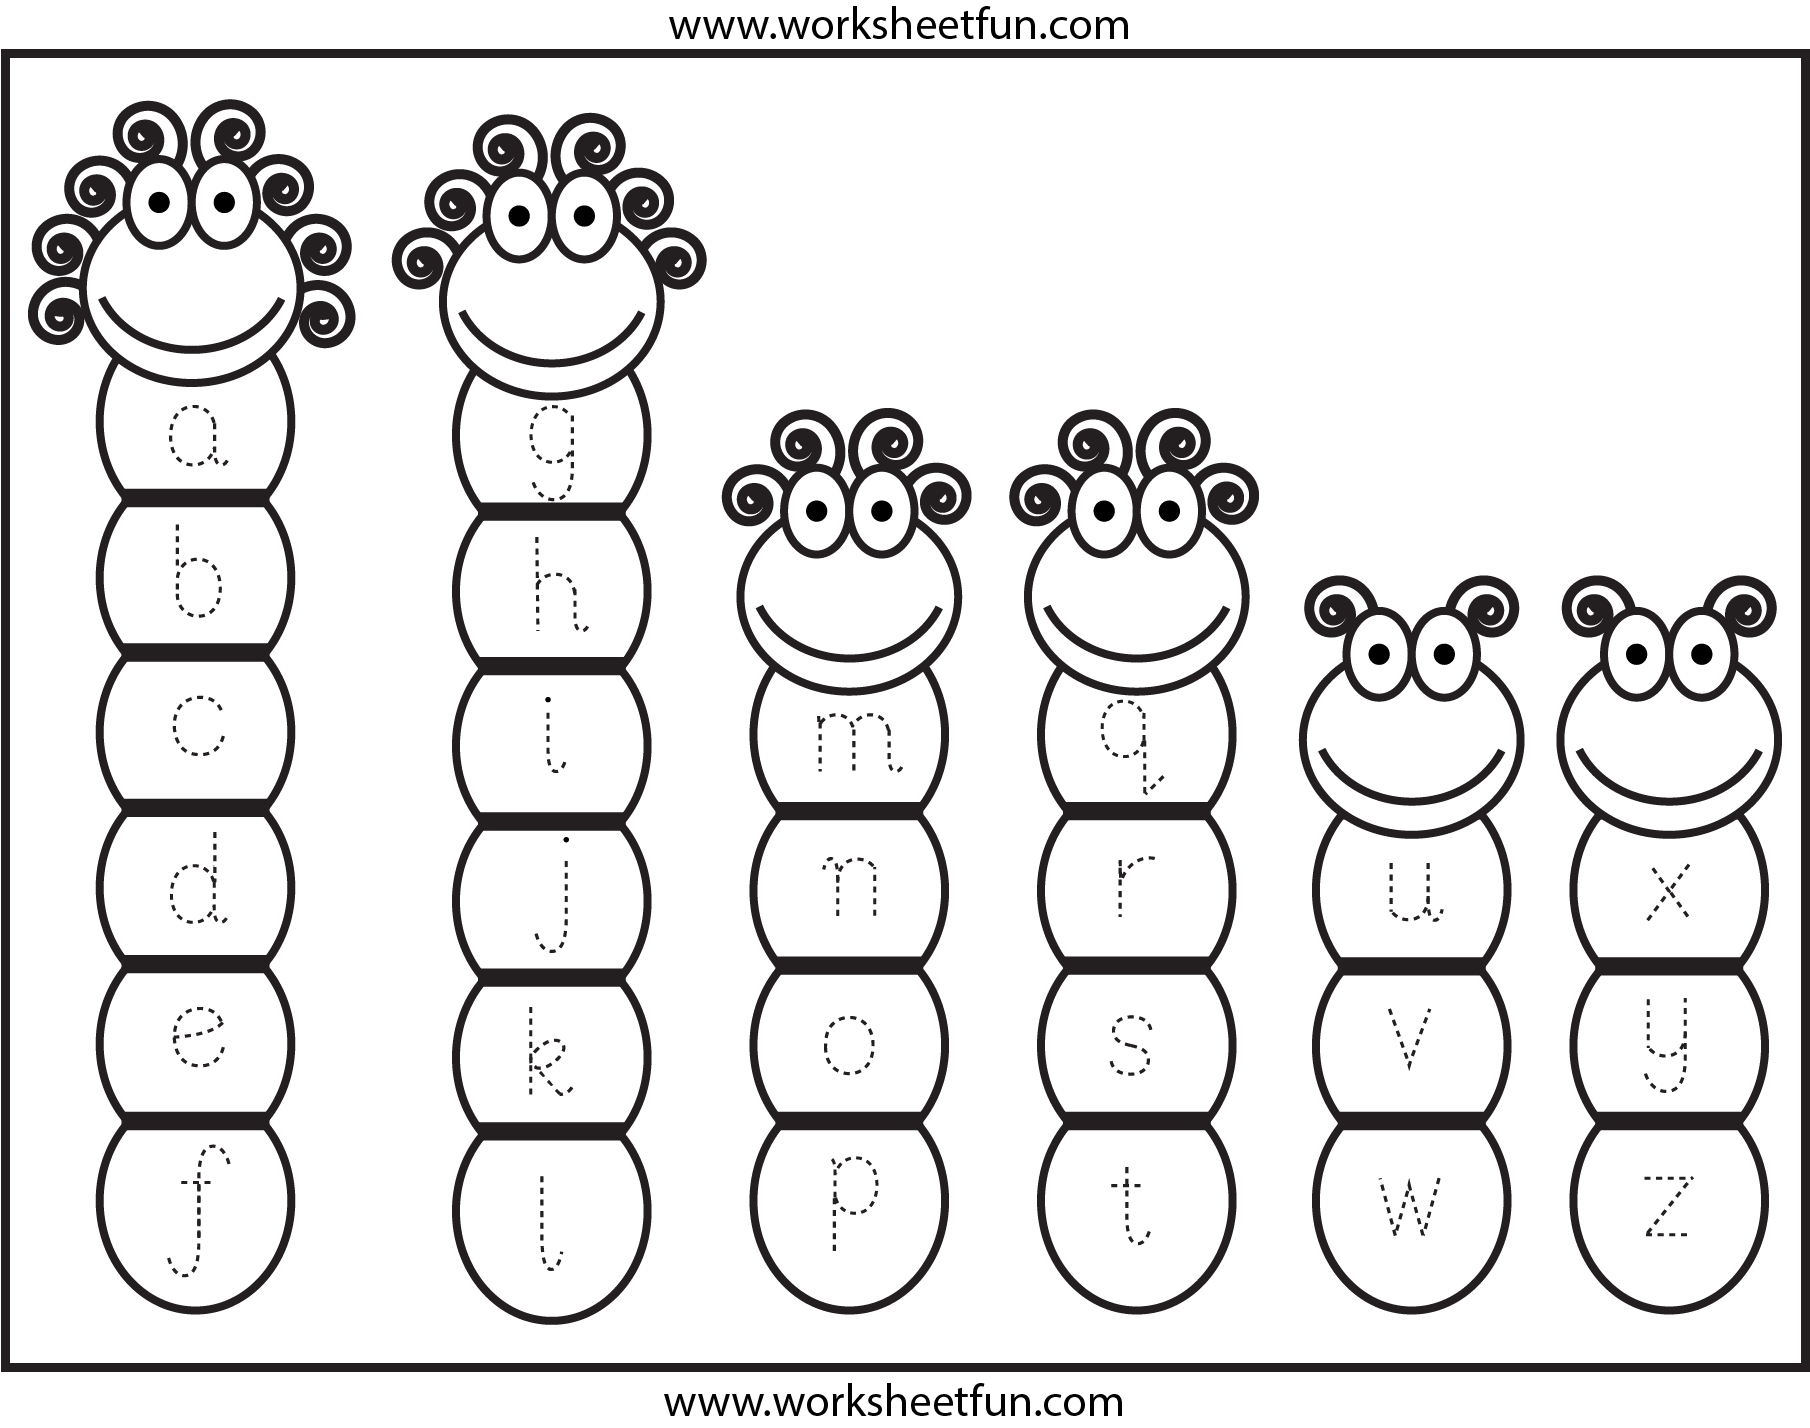 Tracing Lowercase Letters Small Letters Free Printable Worksheets Worksheetfun